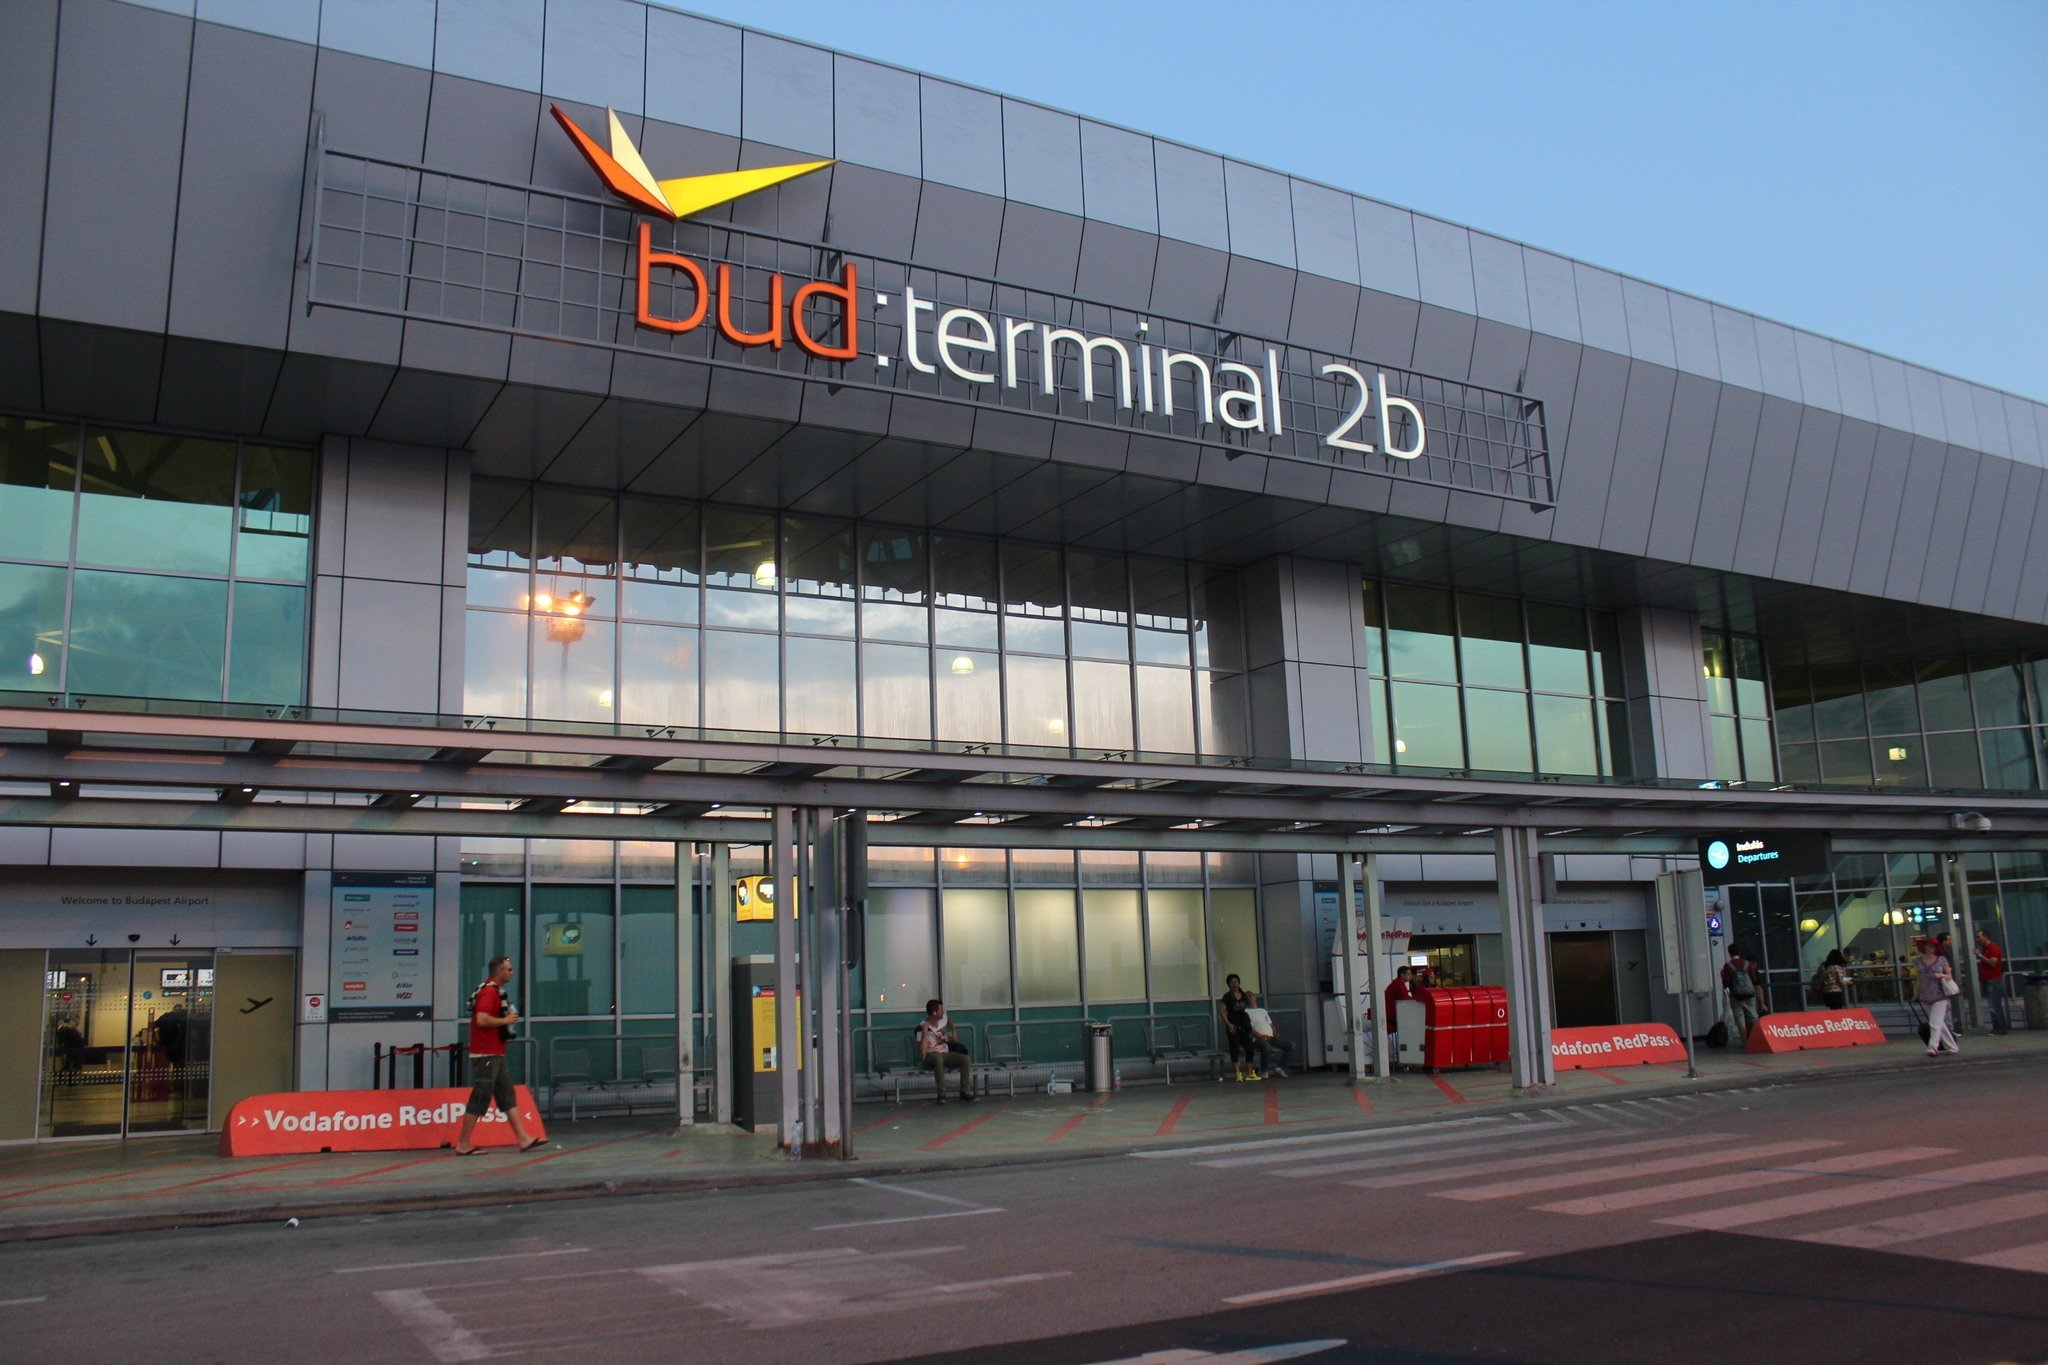 Aeroporto Budapest : Budapest airport projects passenger number record for